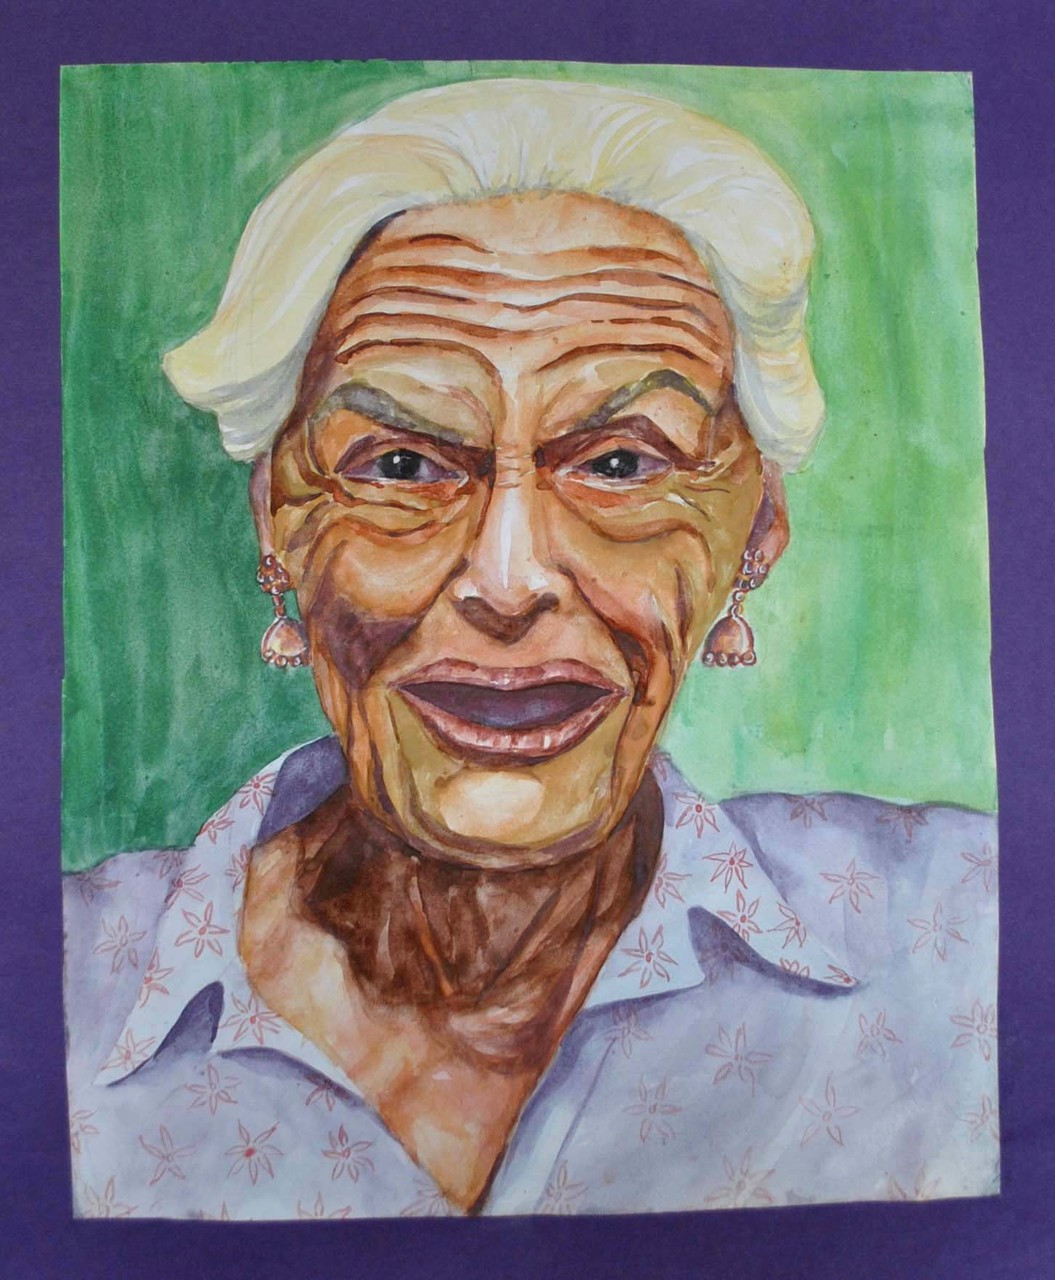 Buy Old Lady With Flower Design Shirt Handmade Painting By Radhika